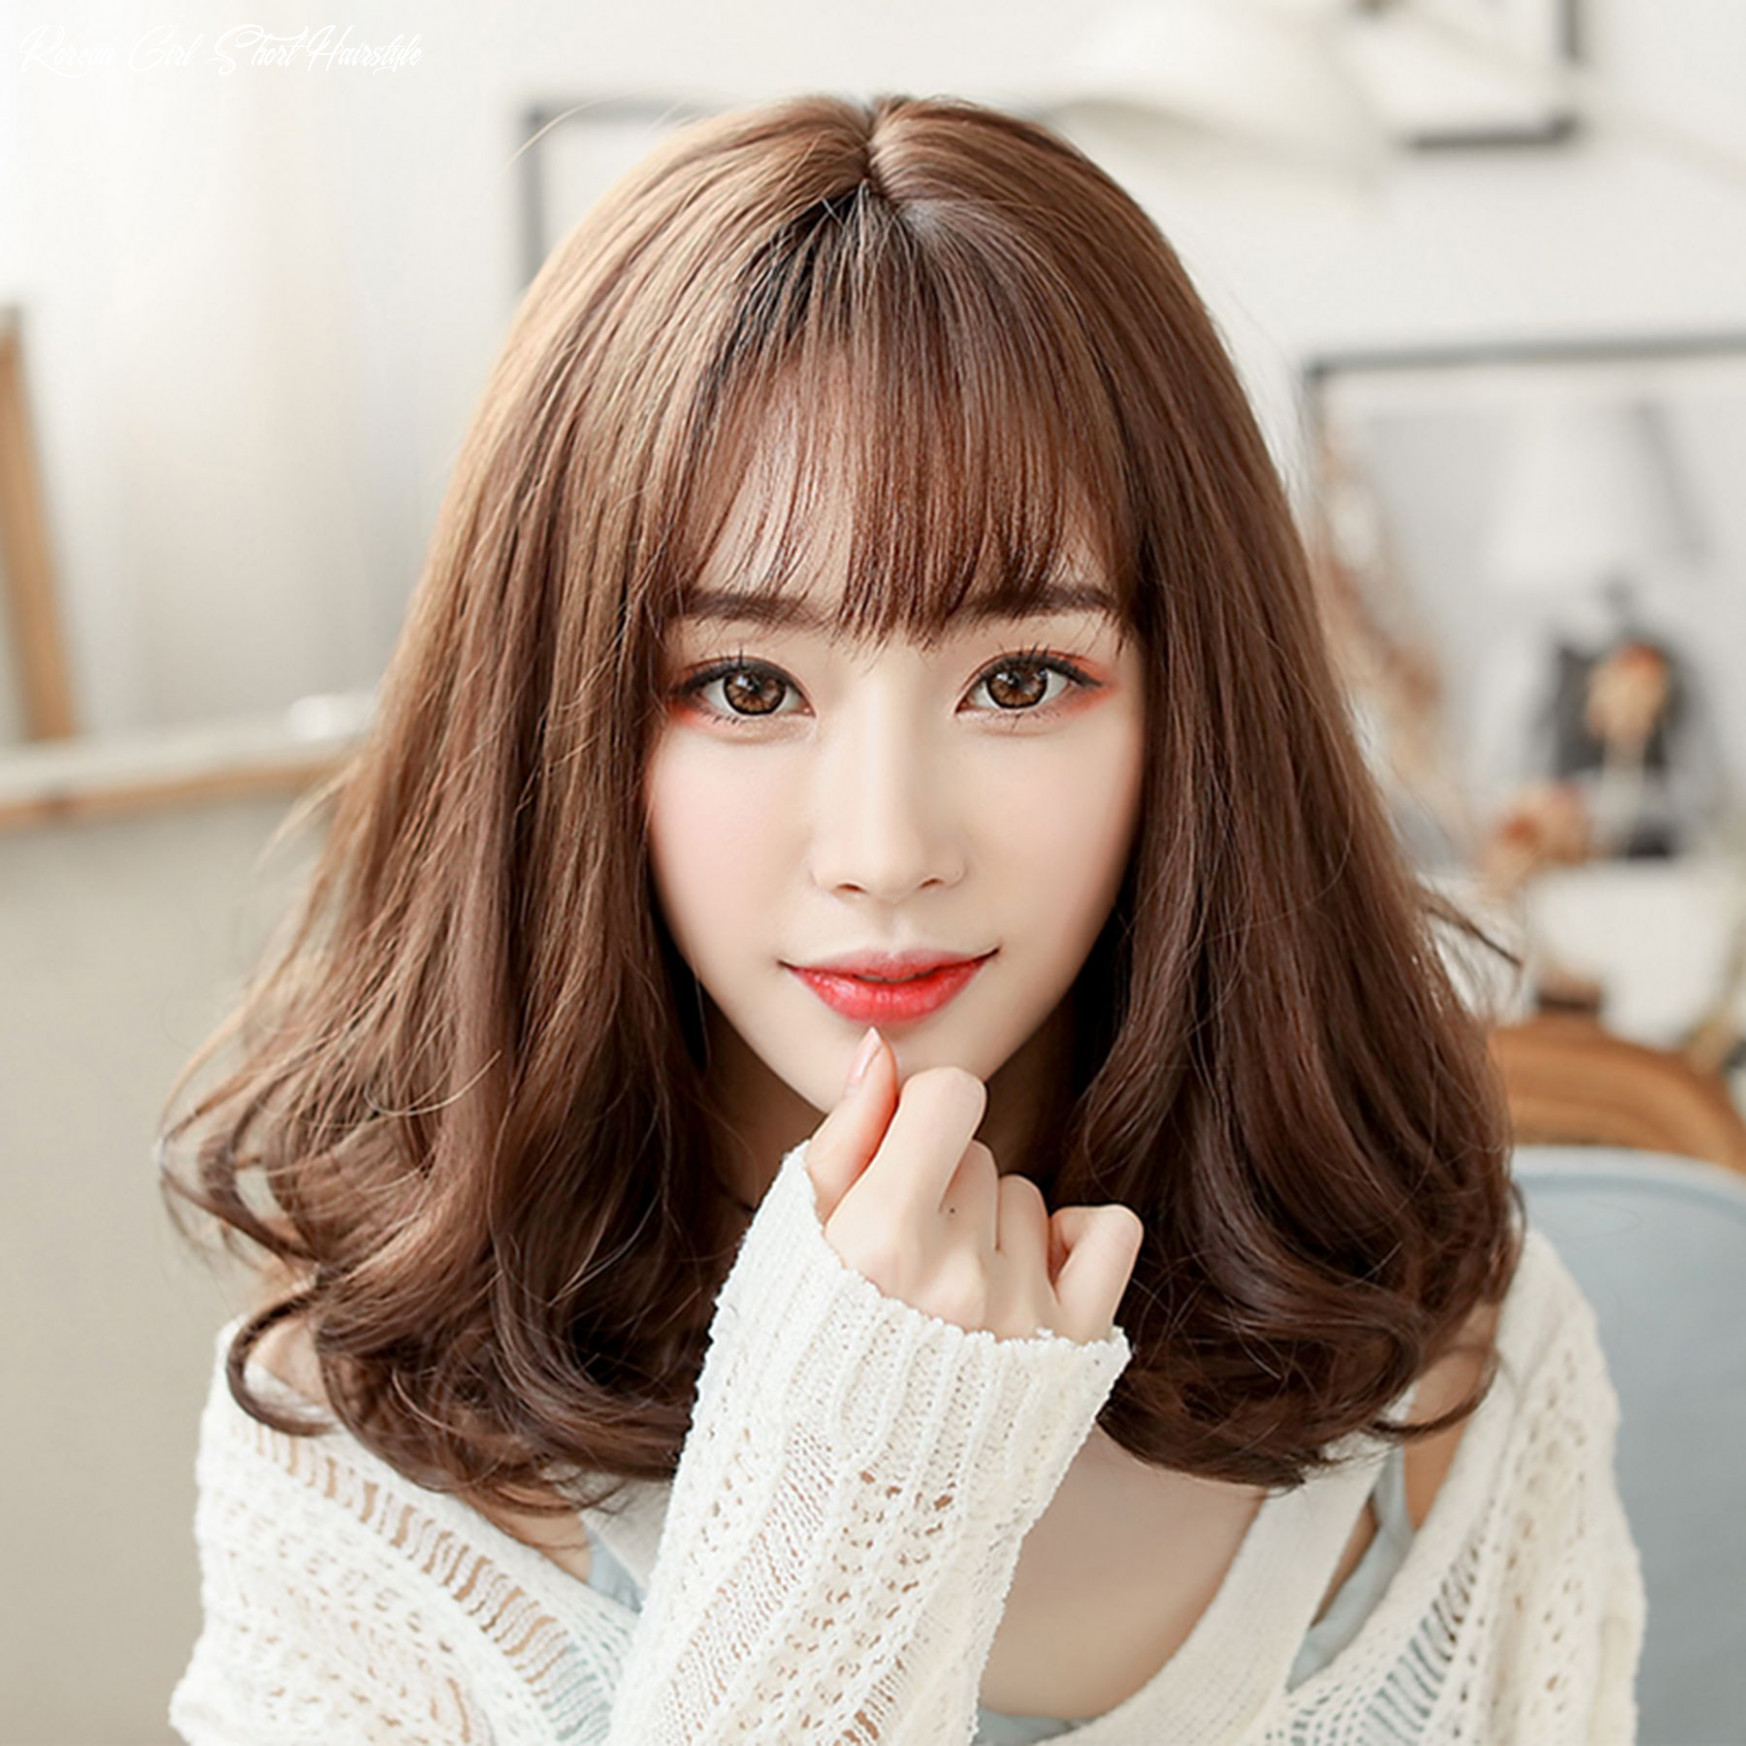 12 Beautiful Korean Girl Hairstyles Suitable for Millennials ...